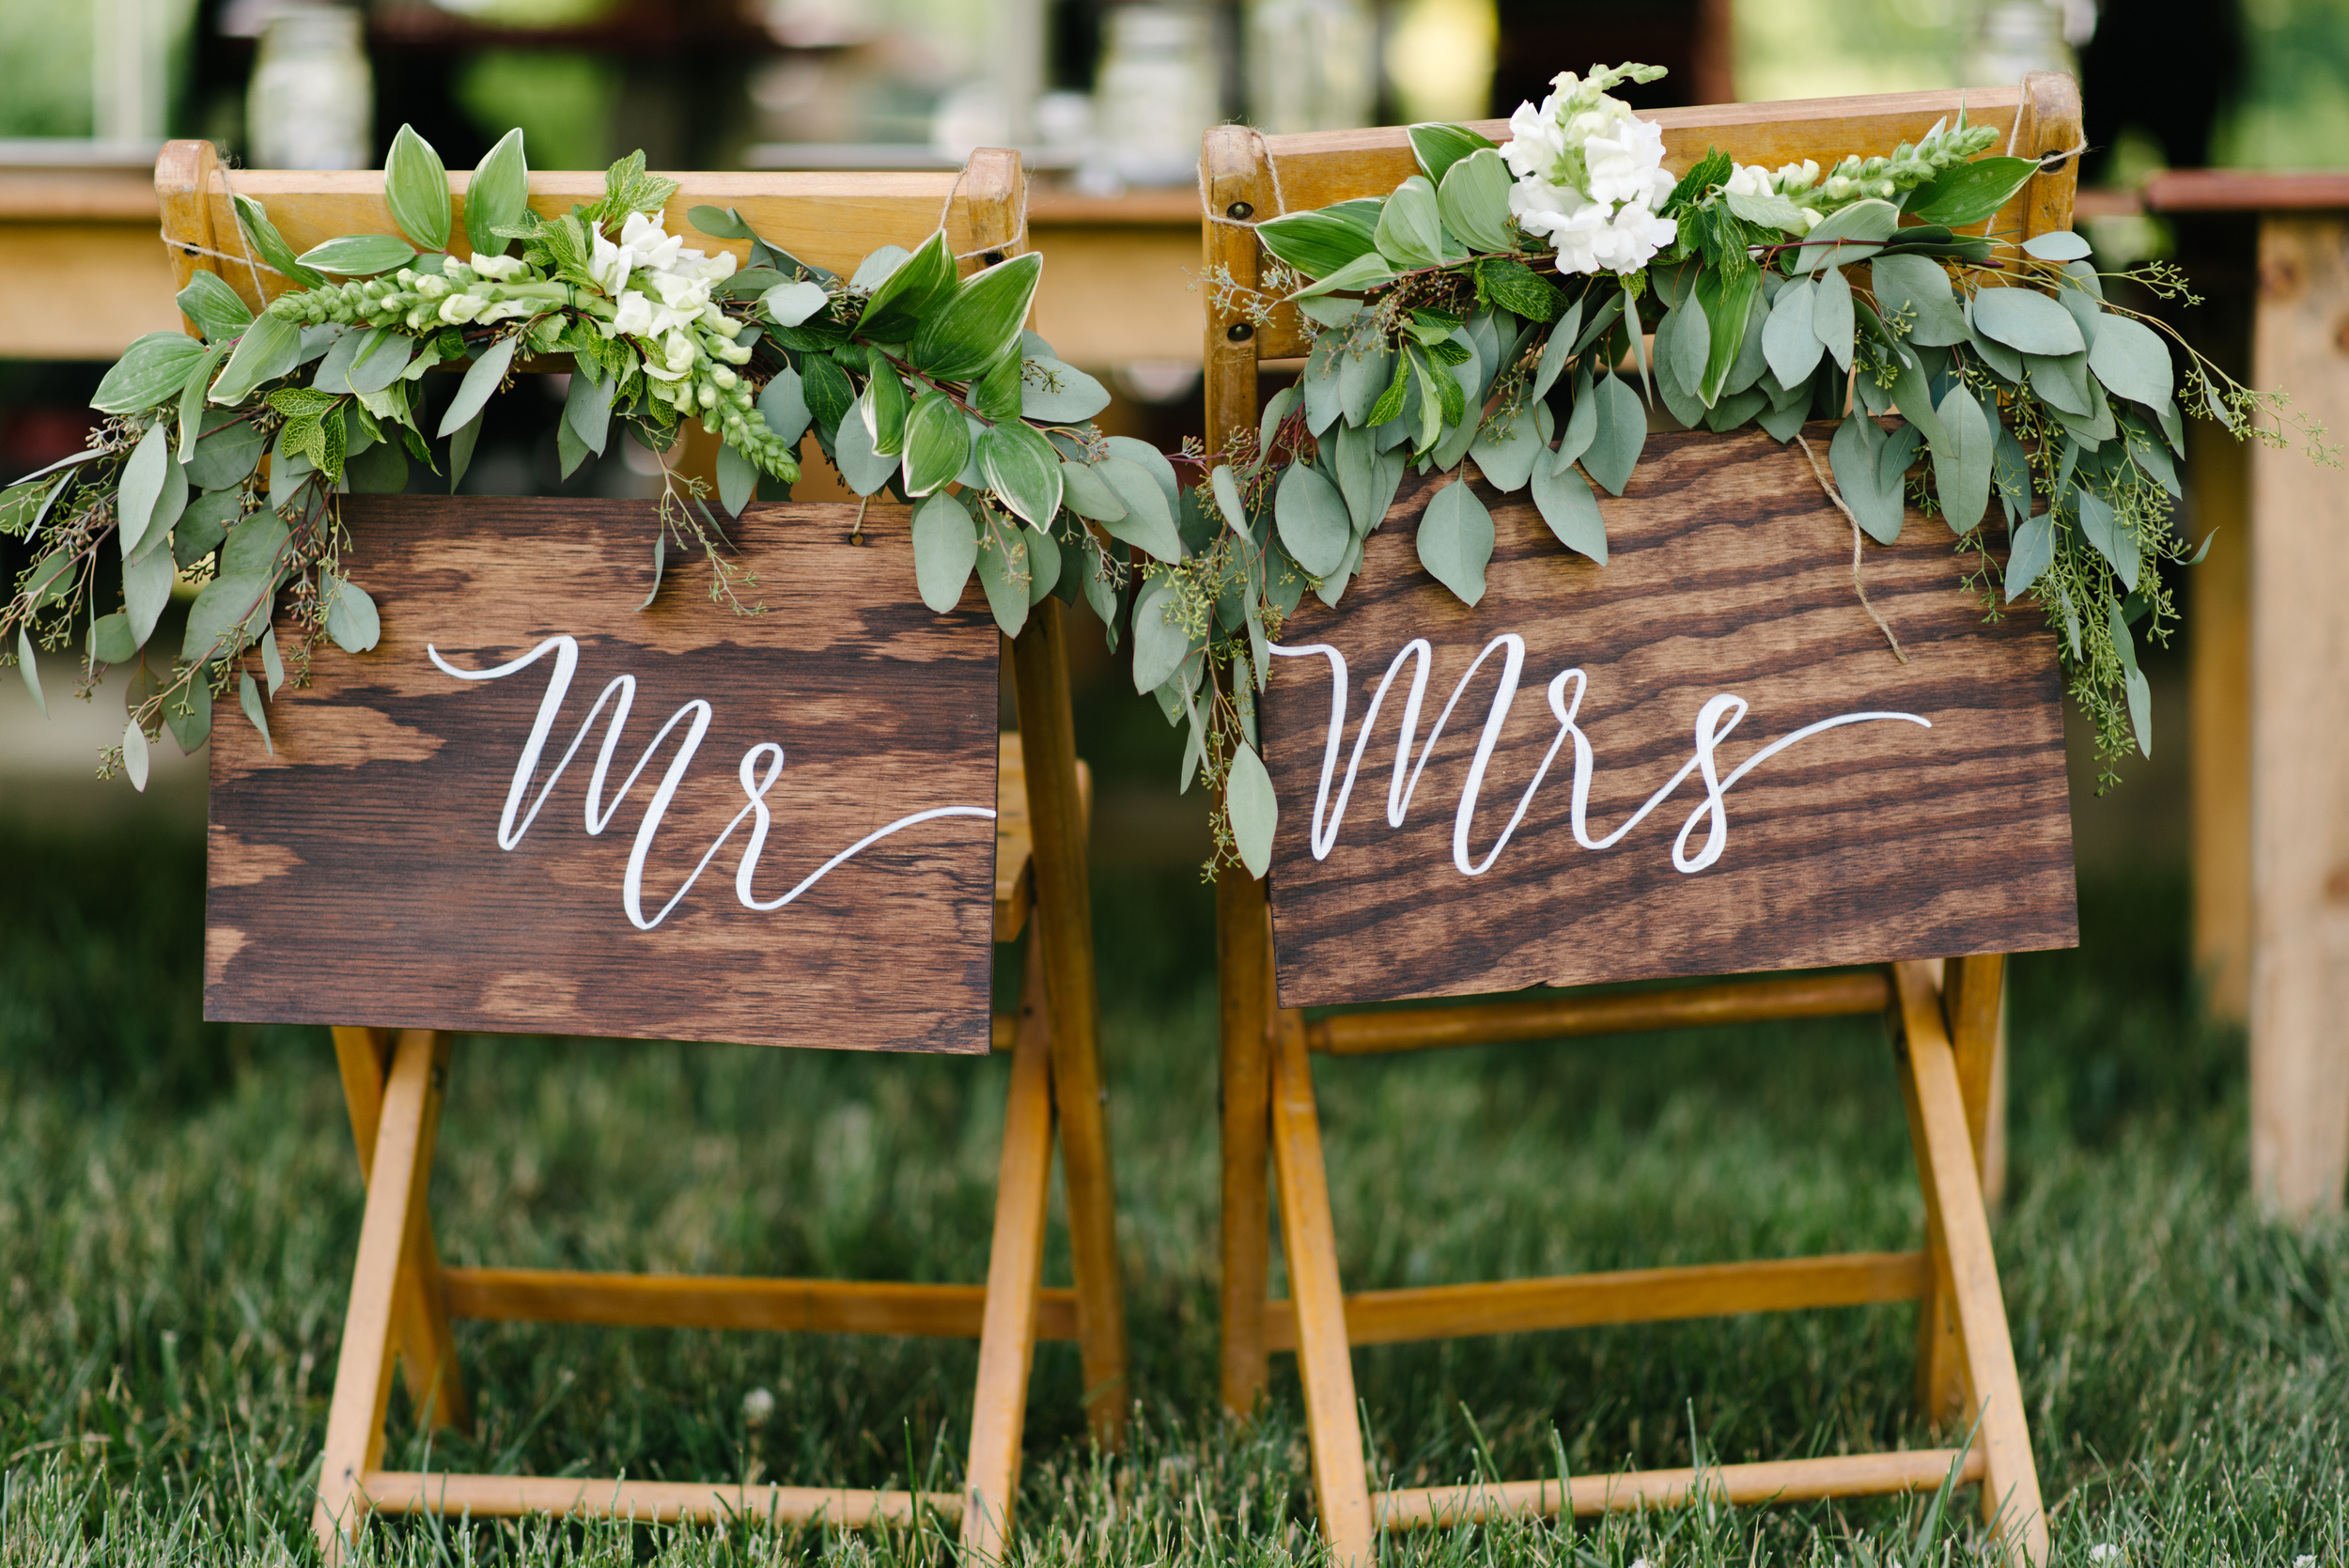 mr and mrs chairs.jpg